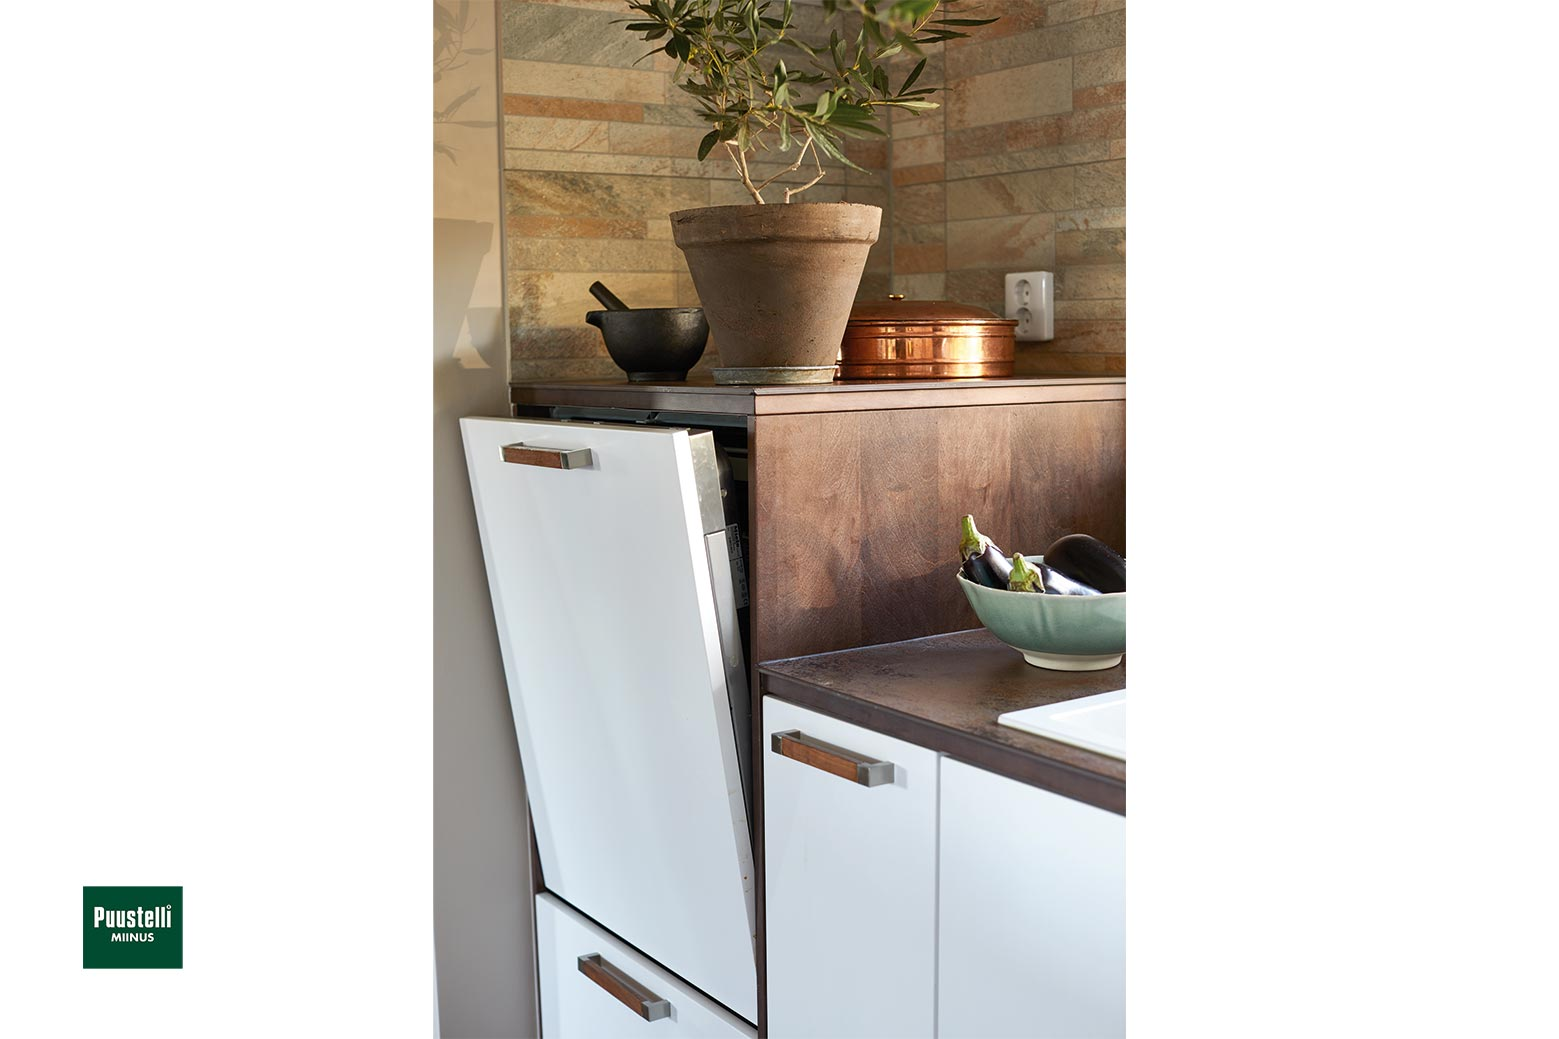 Puustelli Miinus ecological kitchen in white and lacquered dark brown birch veneer raised dishwahser